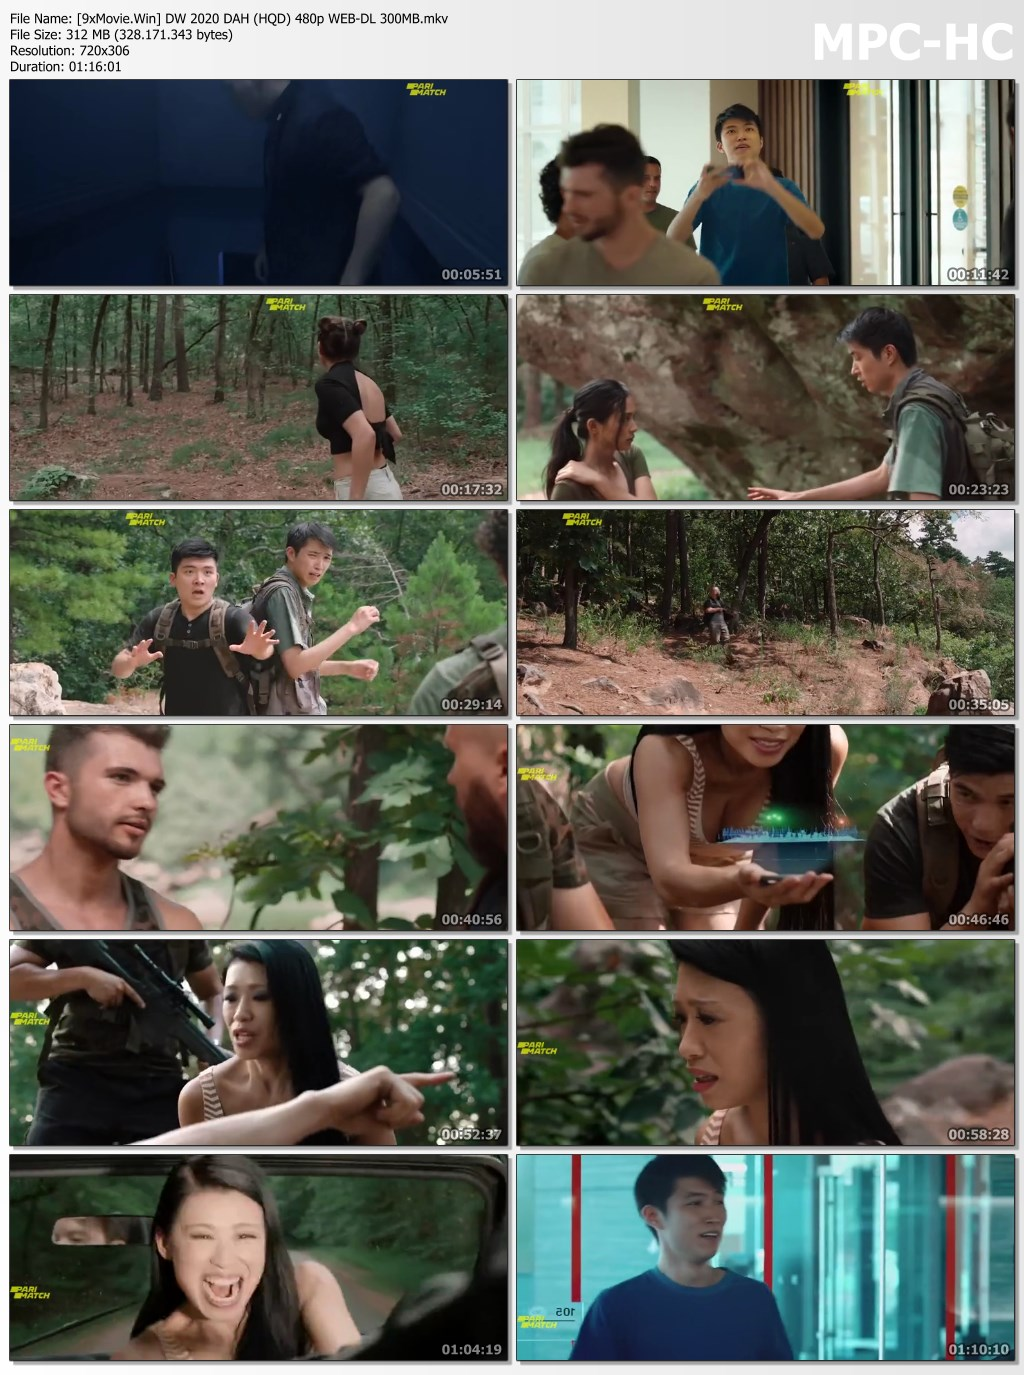 Dinosaur World 2020 Dual Audio Hindi (HQ Dub) 480p WEB-DL x264 300MB